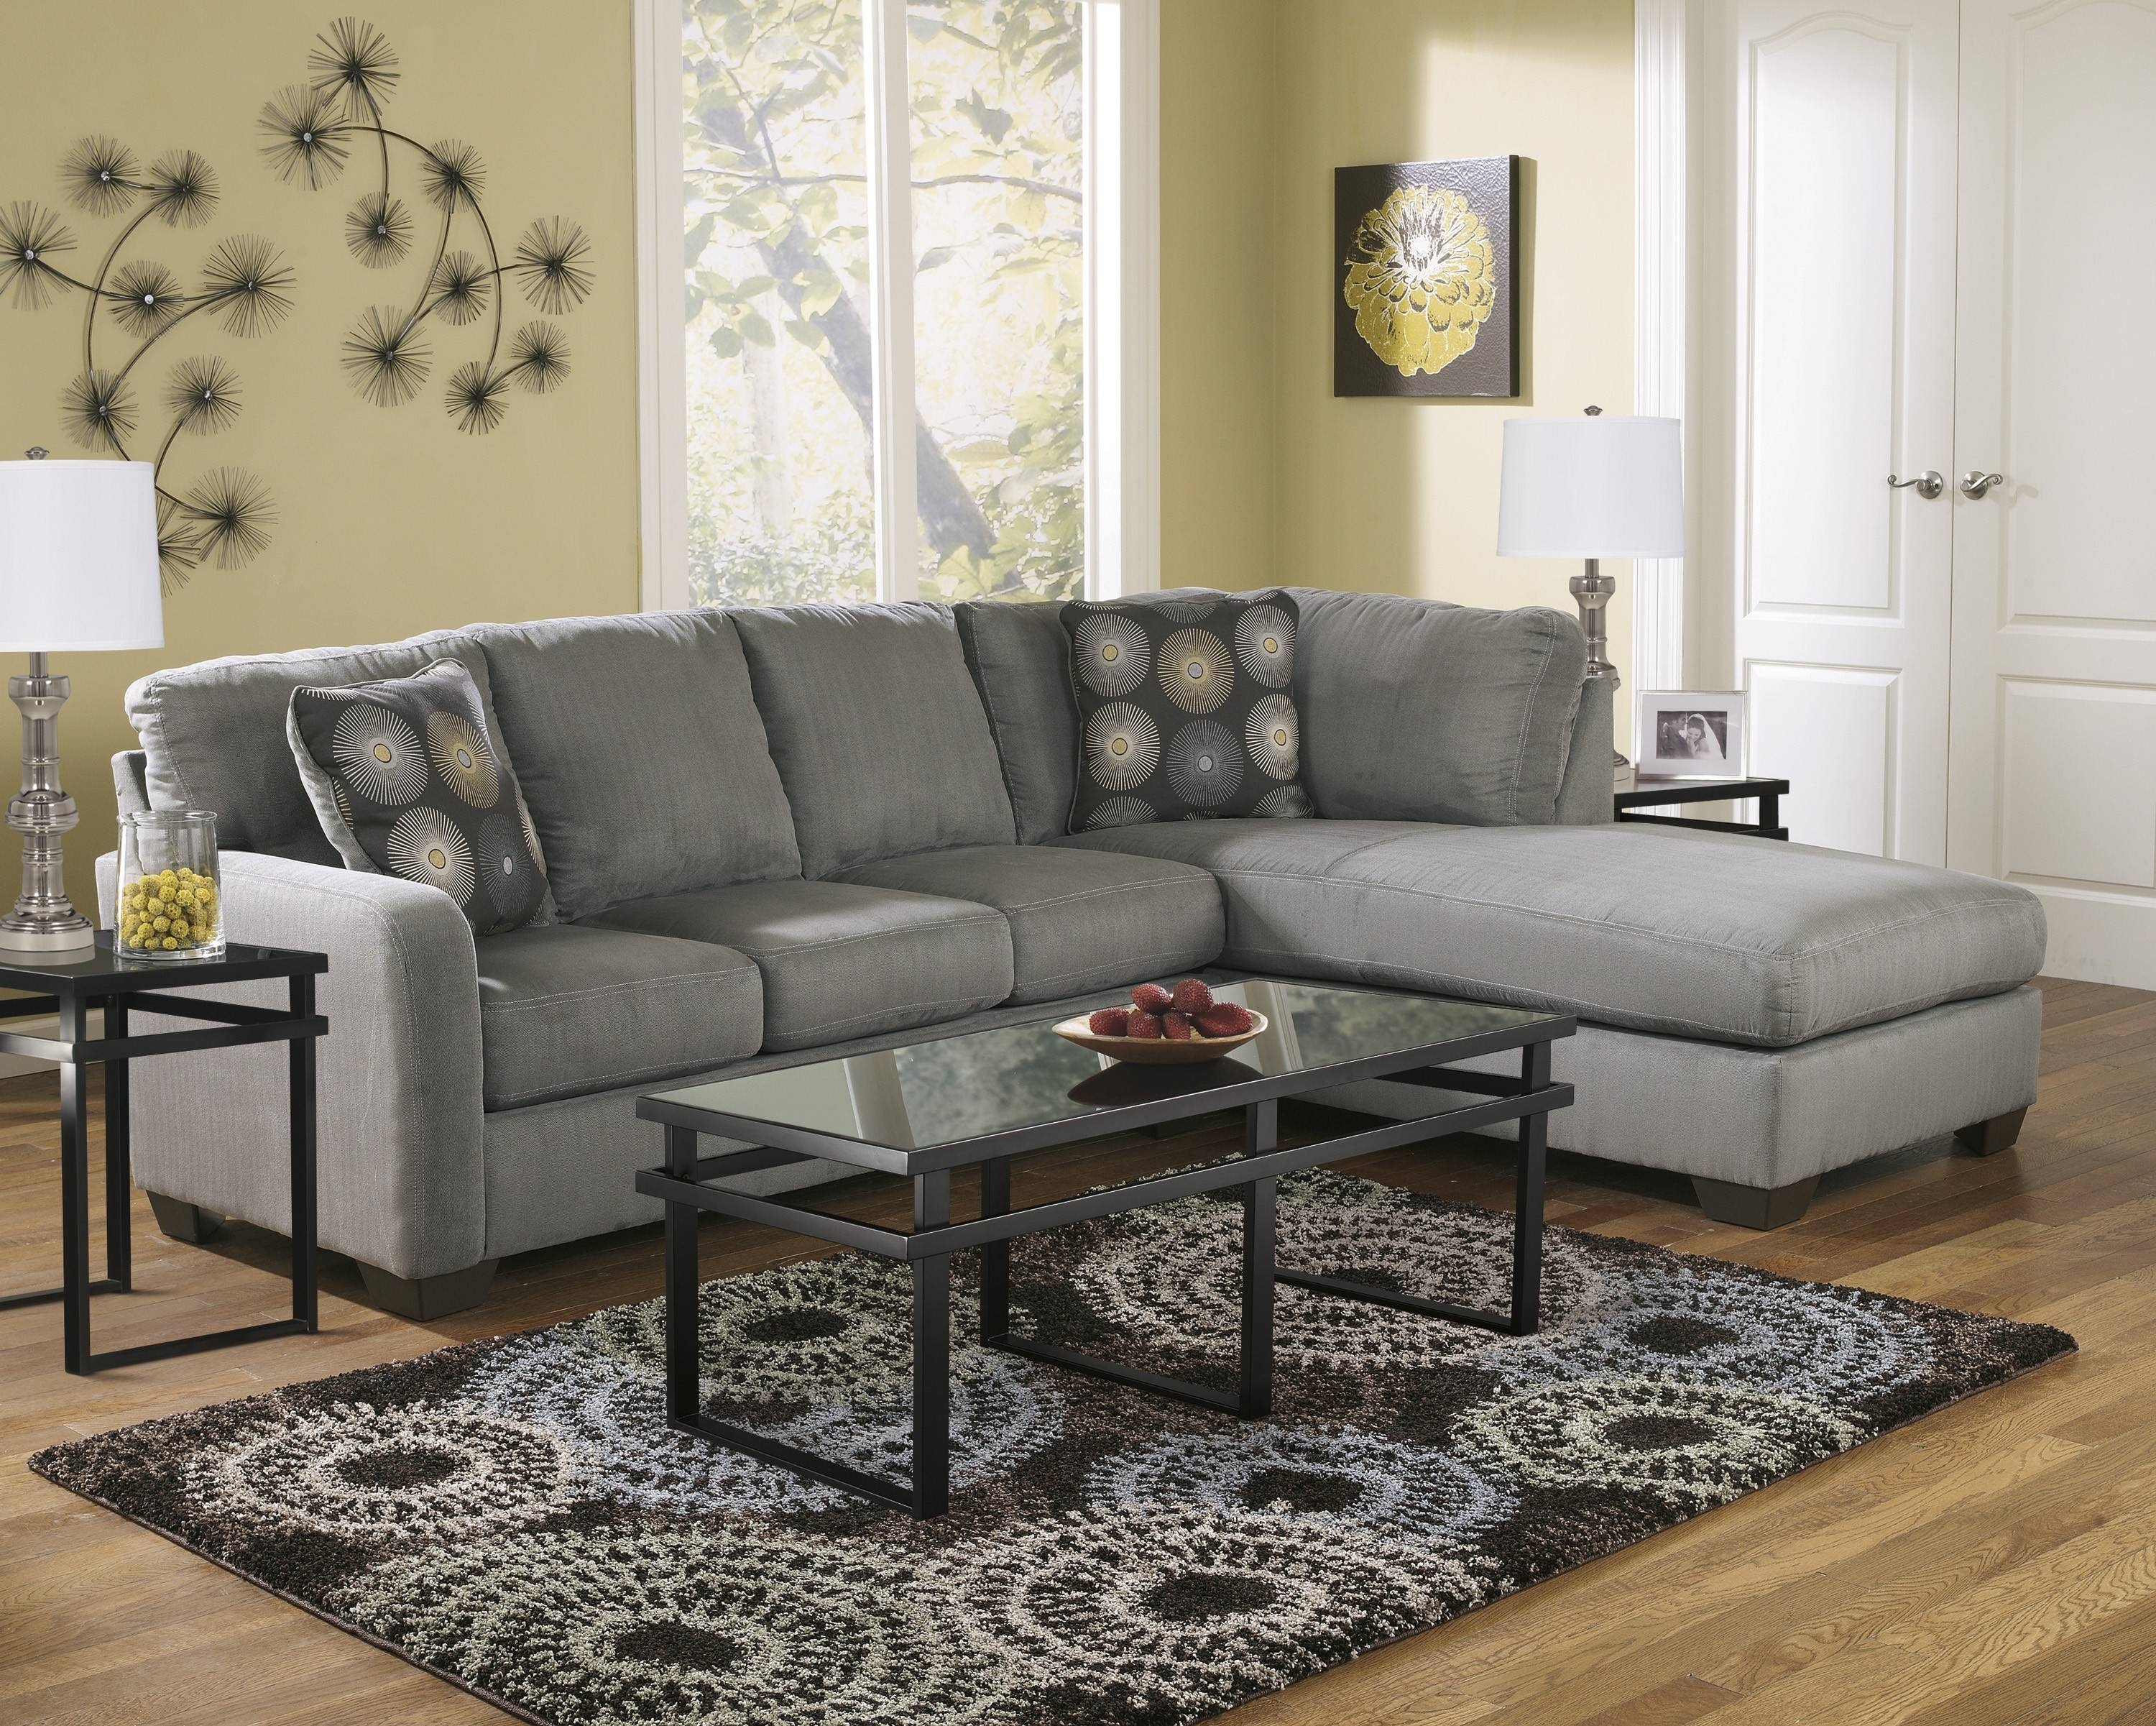 Zella Charcoal 2-Piece Sectional Sofa For $545.00 - Furnitureusa pertaining to Small 2 Piece Sectional Sofas (Image 30 of 30)